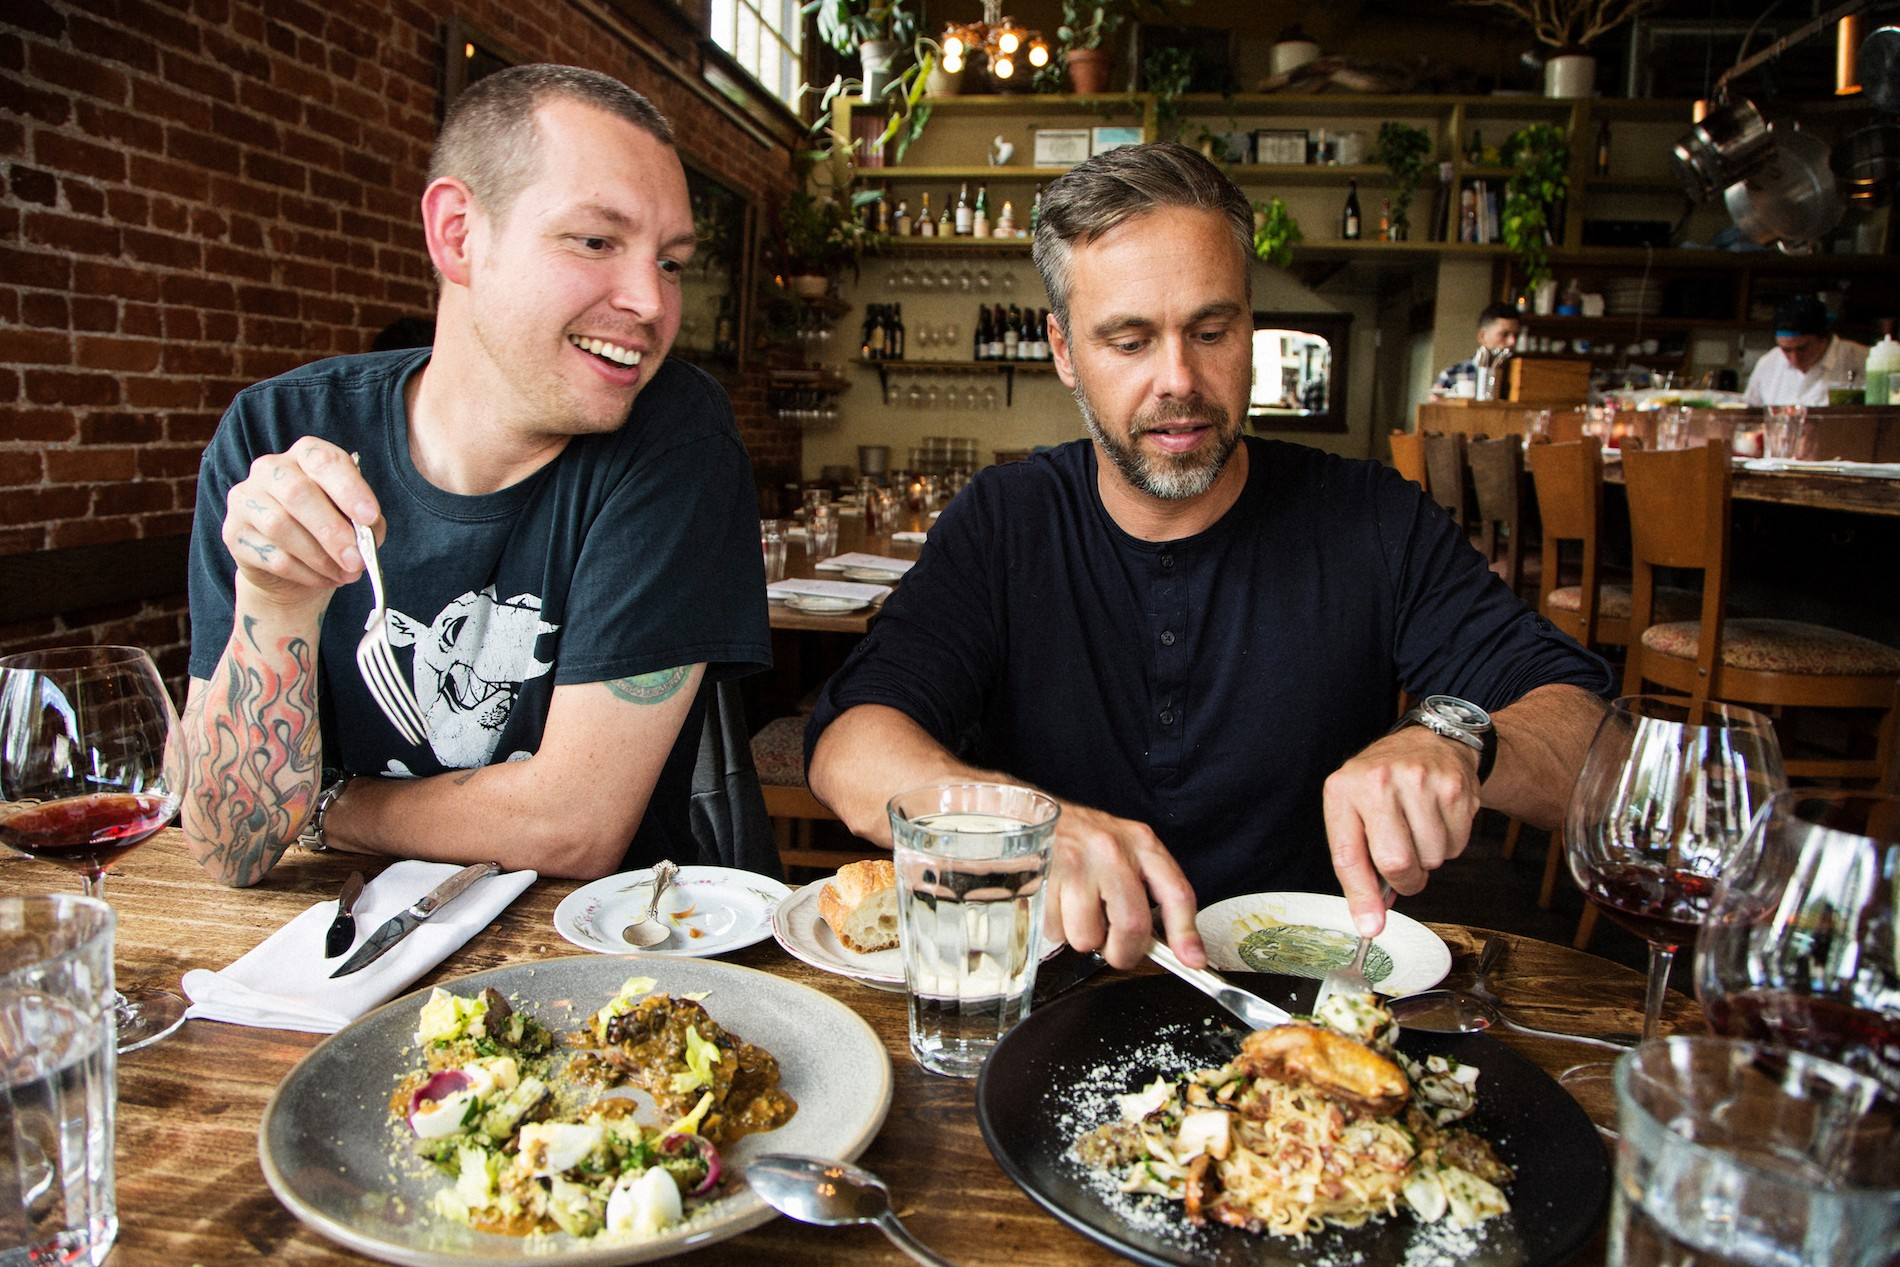 Chefs Lee Cooper and Justin Leboe at Le Pigeon. Mushrooms in Portland, Oregon. August 2016. Matt Lutton / Boreal Collective for Vice Munchies